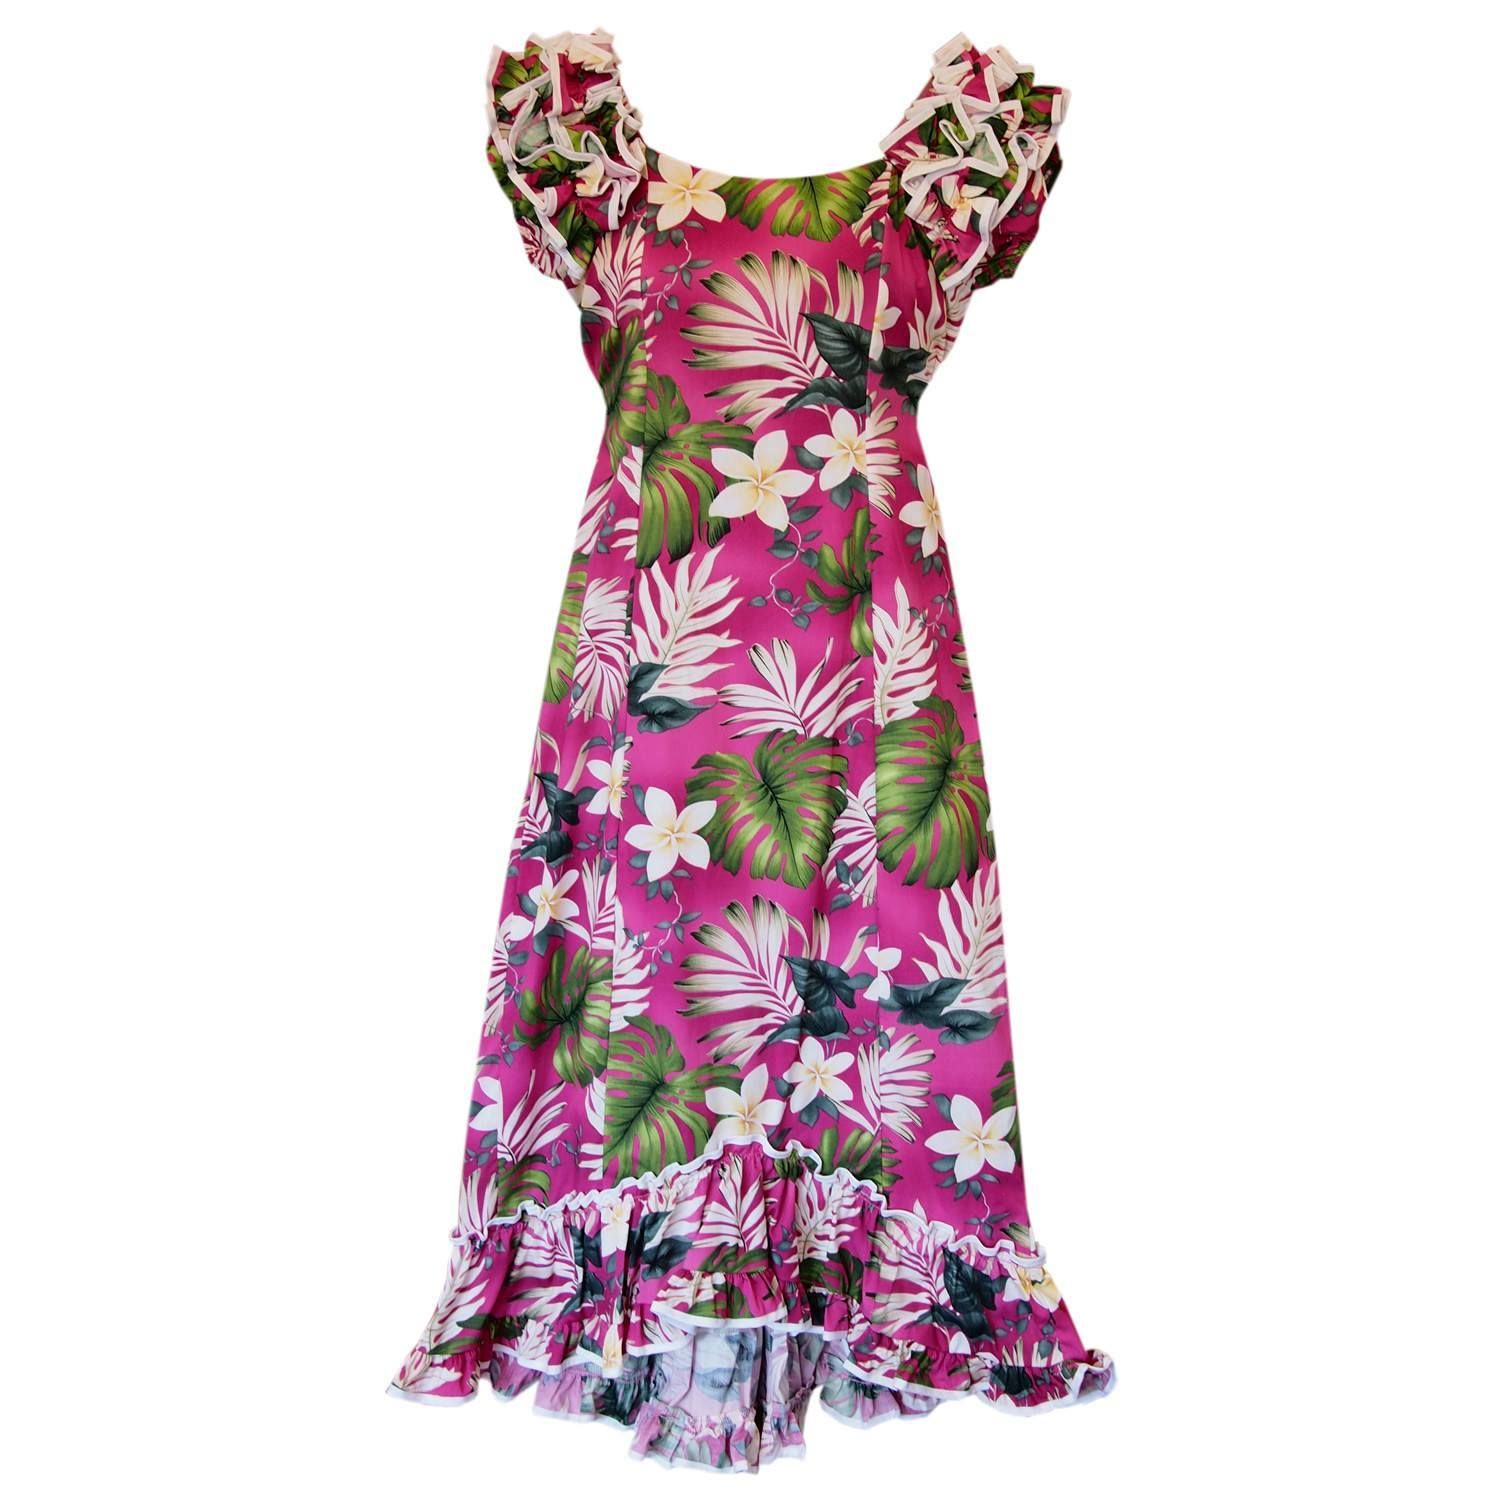 fab05e2486f Excite Pink Hawaiian Meaaloha Muumuu Dress with Sleeves  jesus  sandal   jesussandals  jesussandal  flipflop  palihawaii